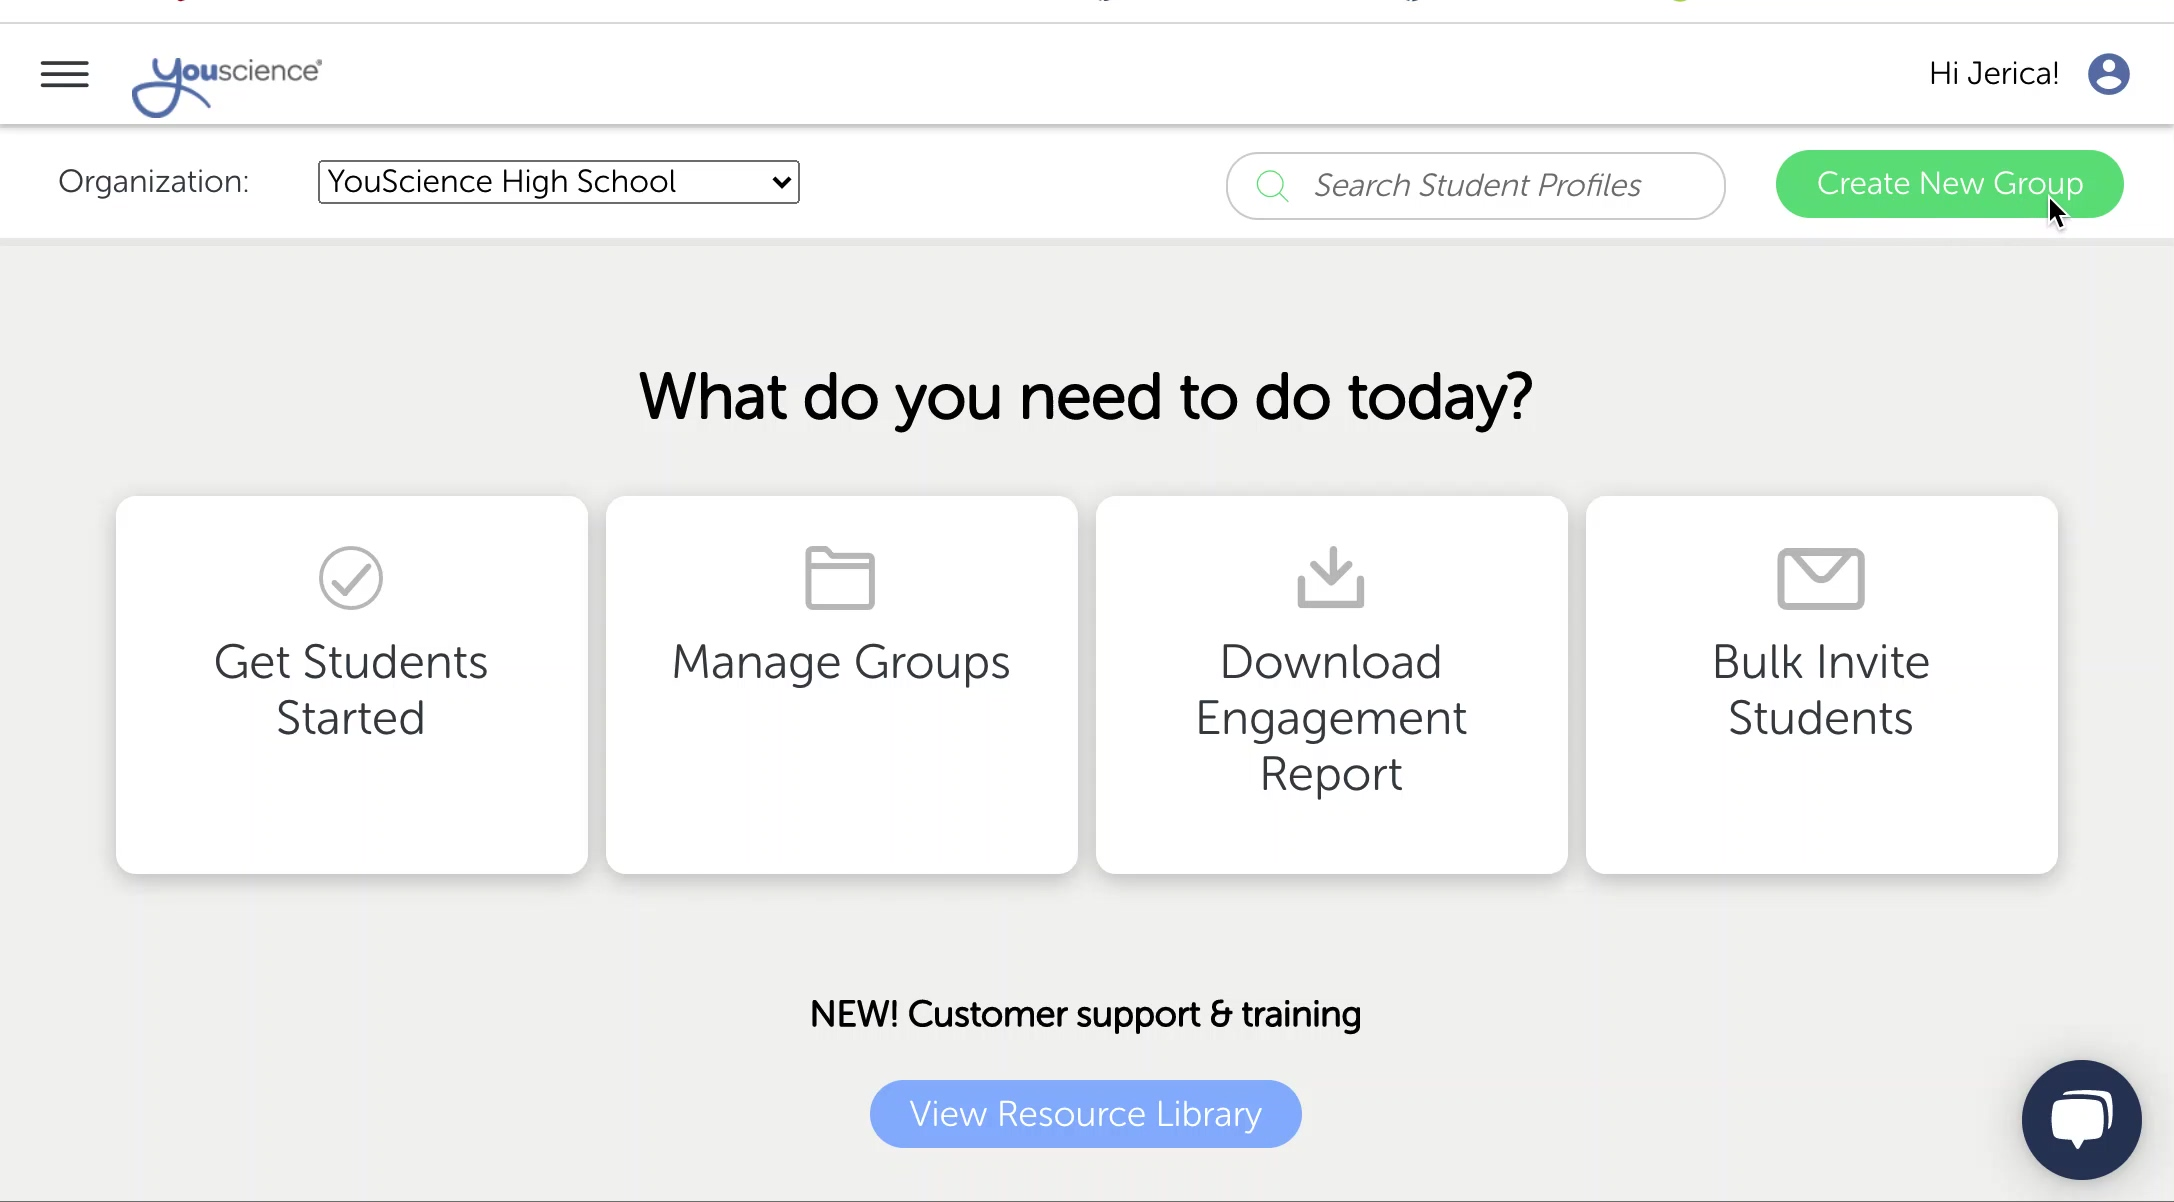 How to Create a New Group in the Admin Portal